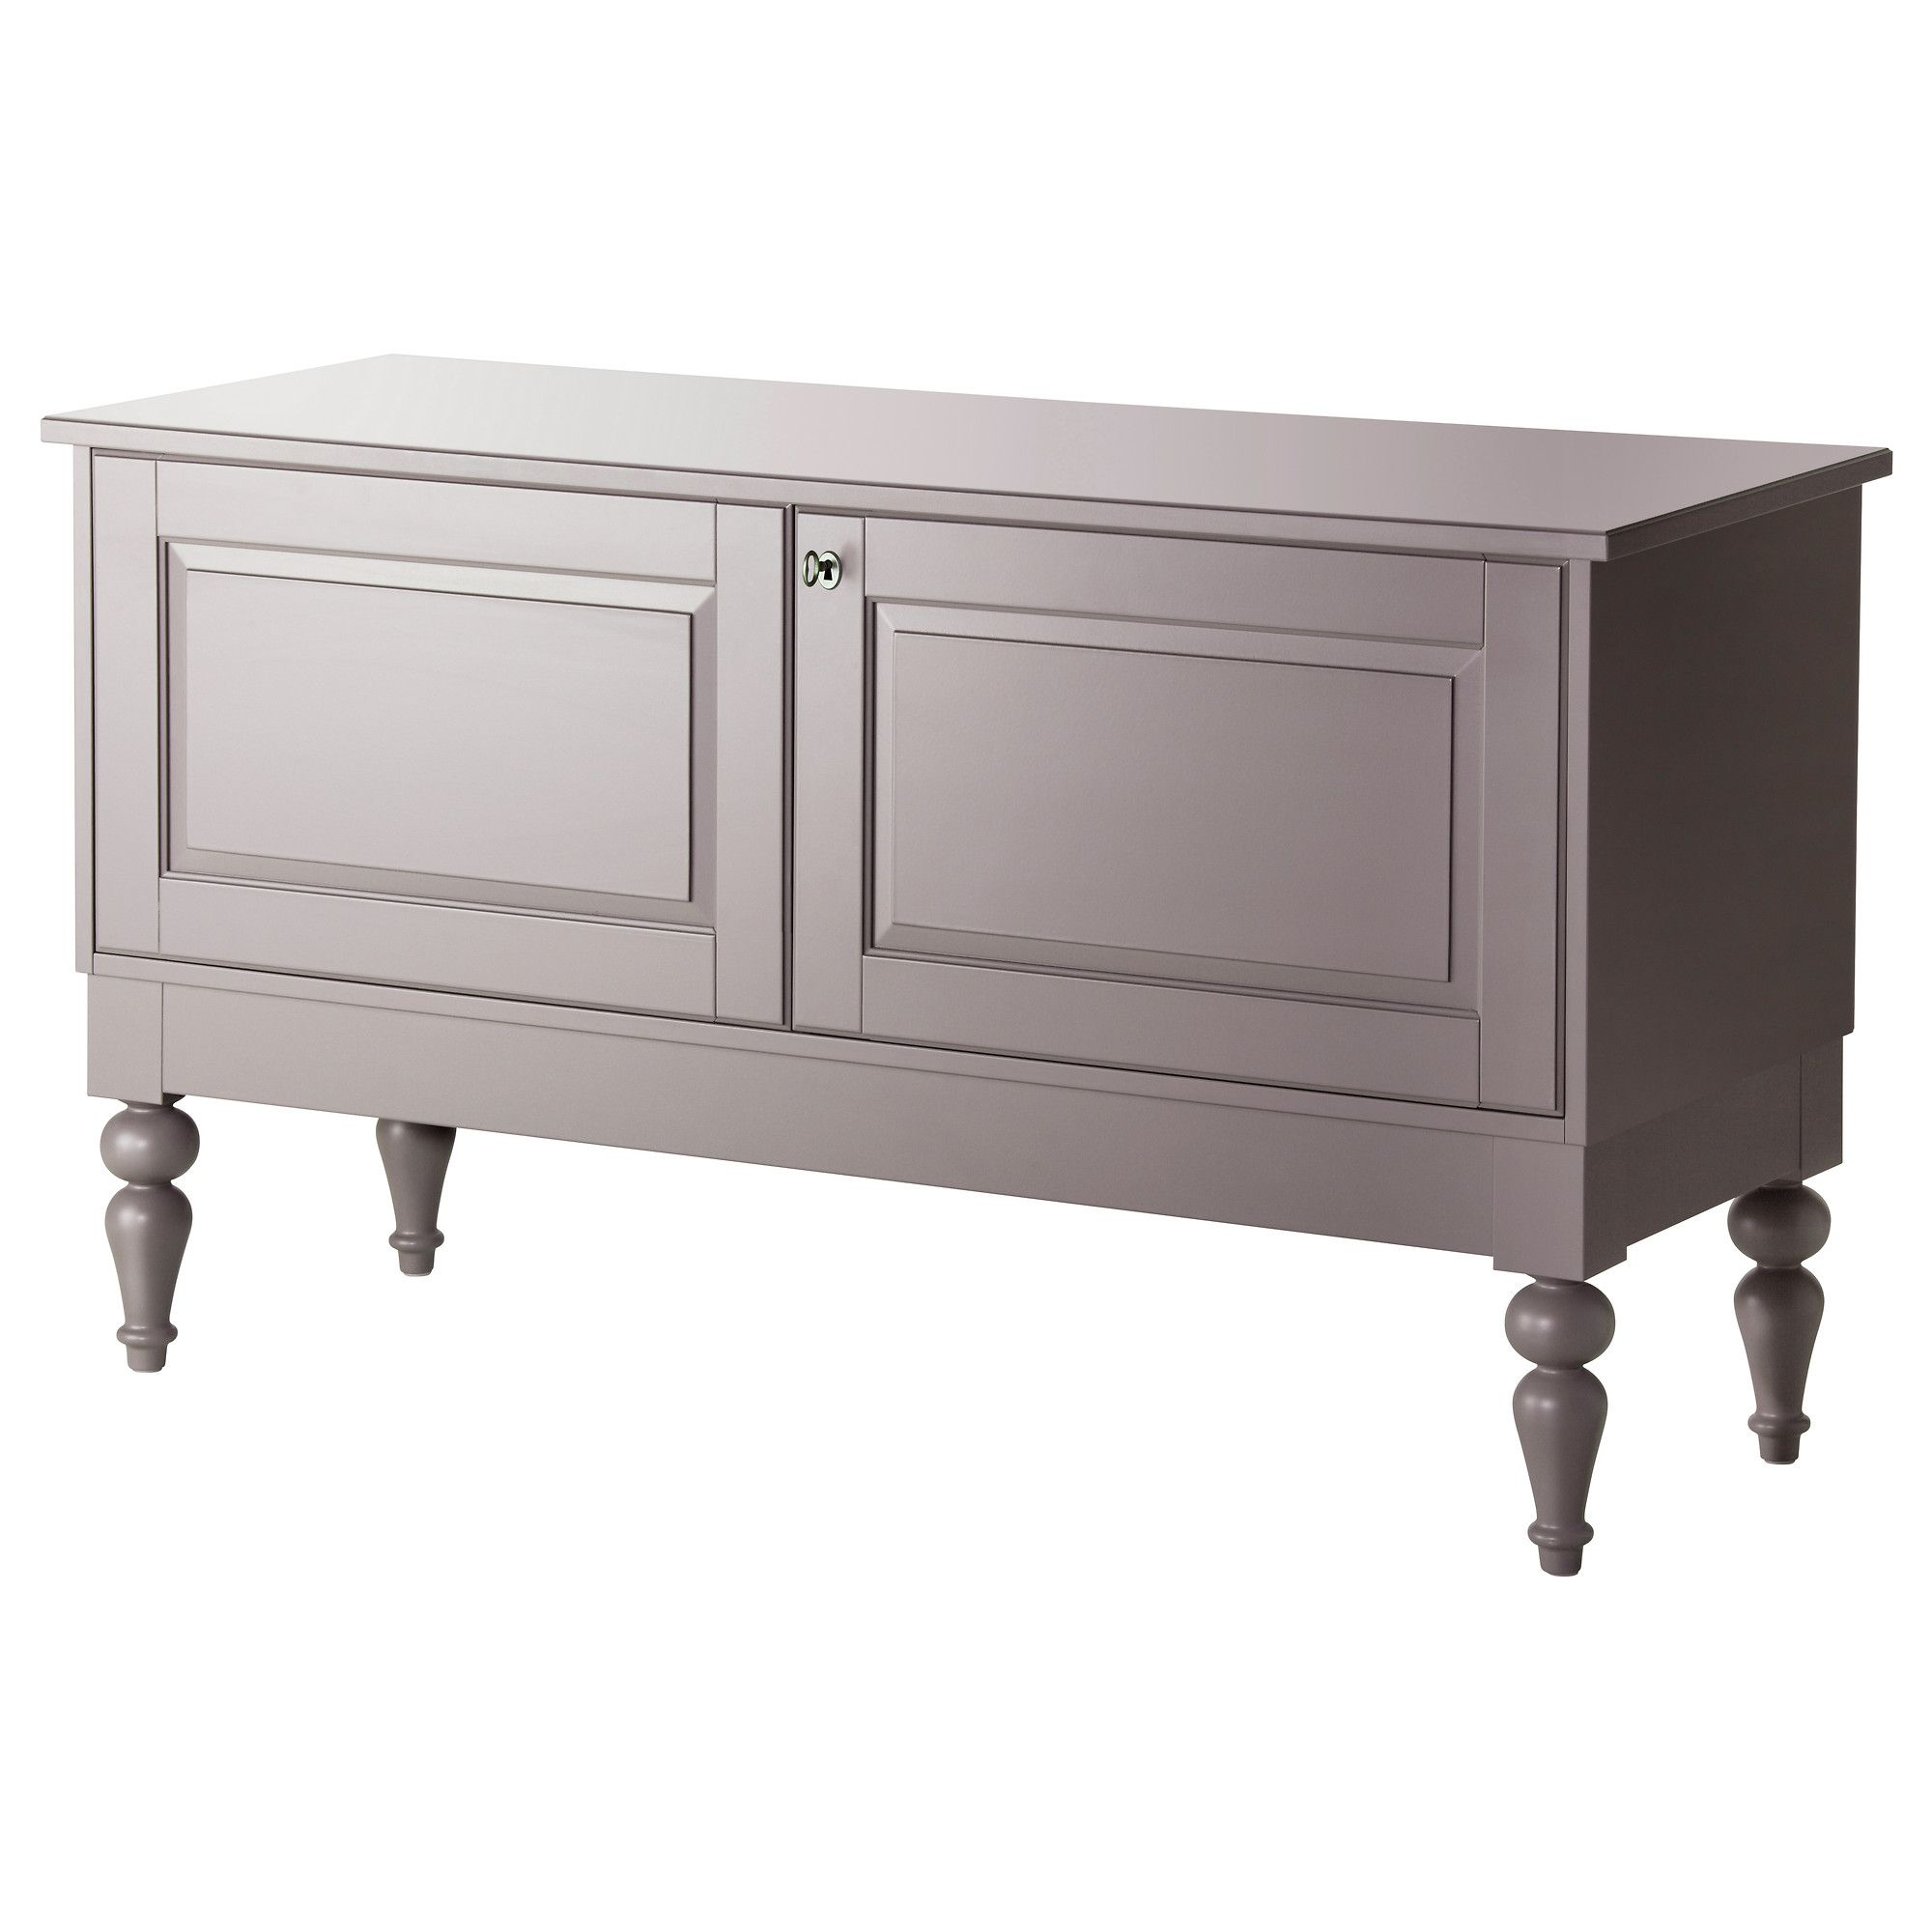 ISALA Sideboard Gray Width 55 Depth 18 Height 30 140 Cm 48 77 And Other Furniture Decor Products